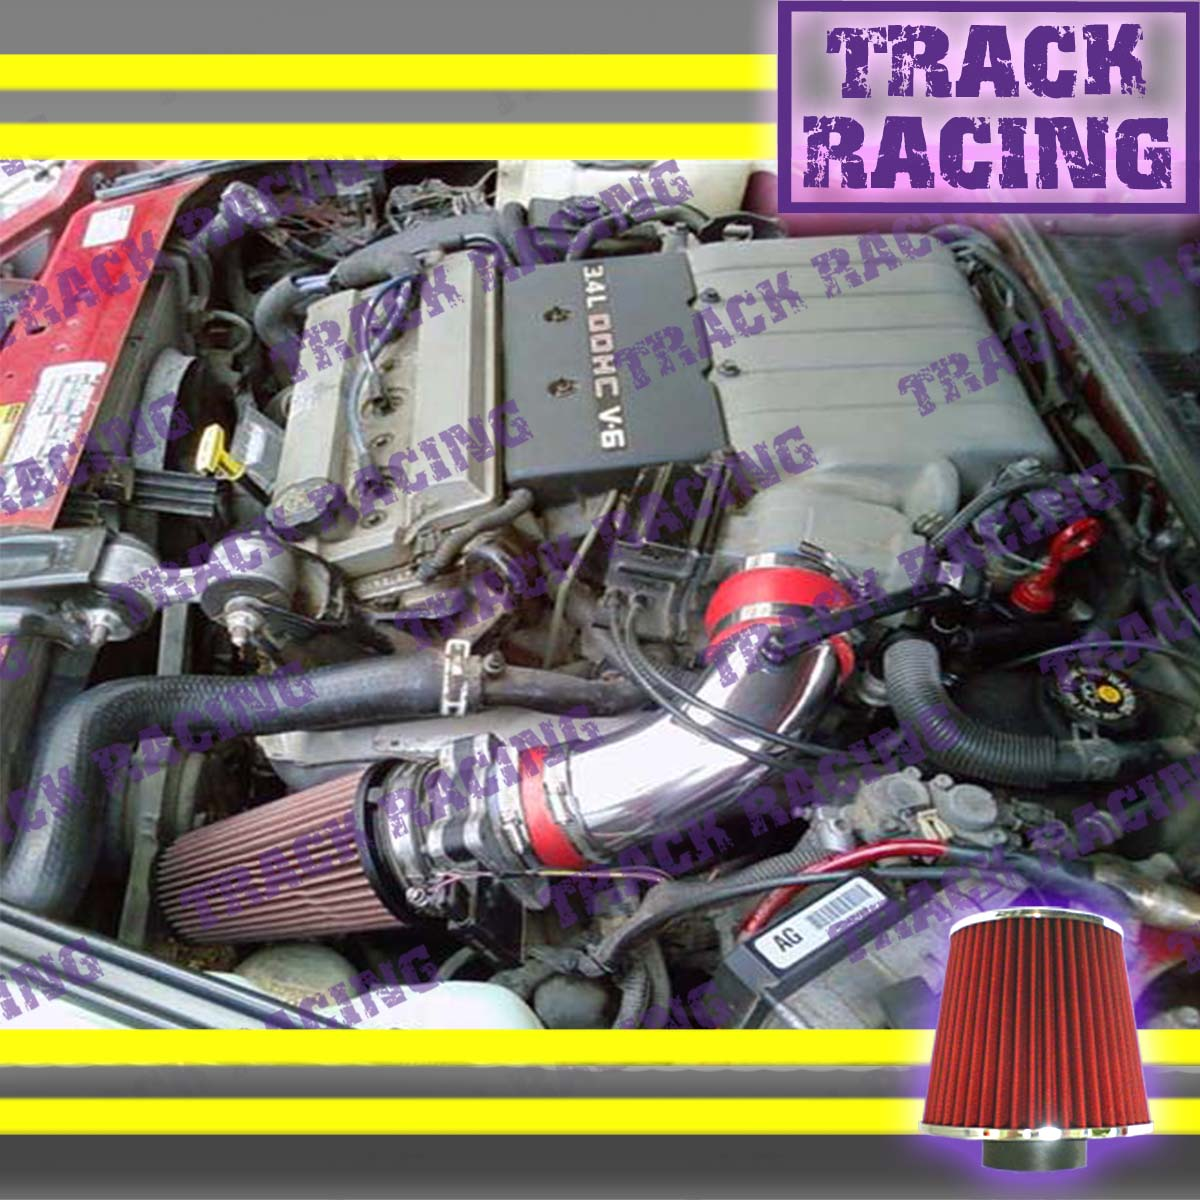 94 95 Chevy Lumina Oldsmobile Cutlass Supreme 34l V6 Lq1 Z34 Air Cutl Wiring Diagram Hover Mouse Over Image To Enlarge